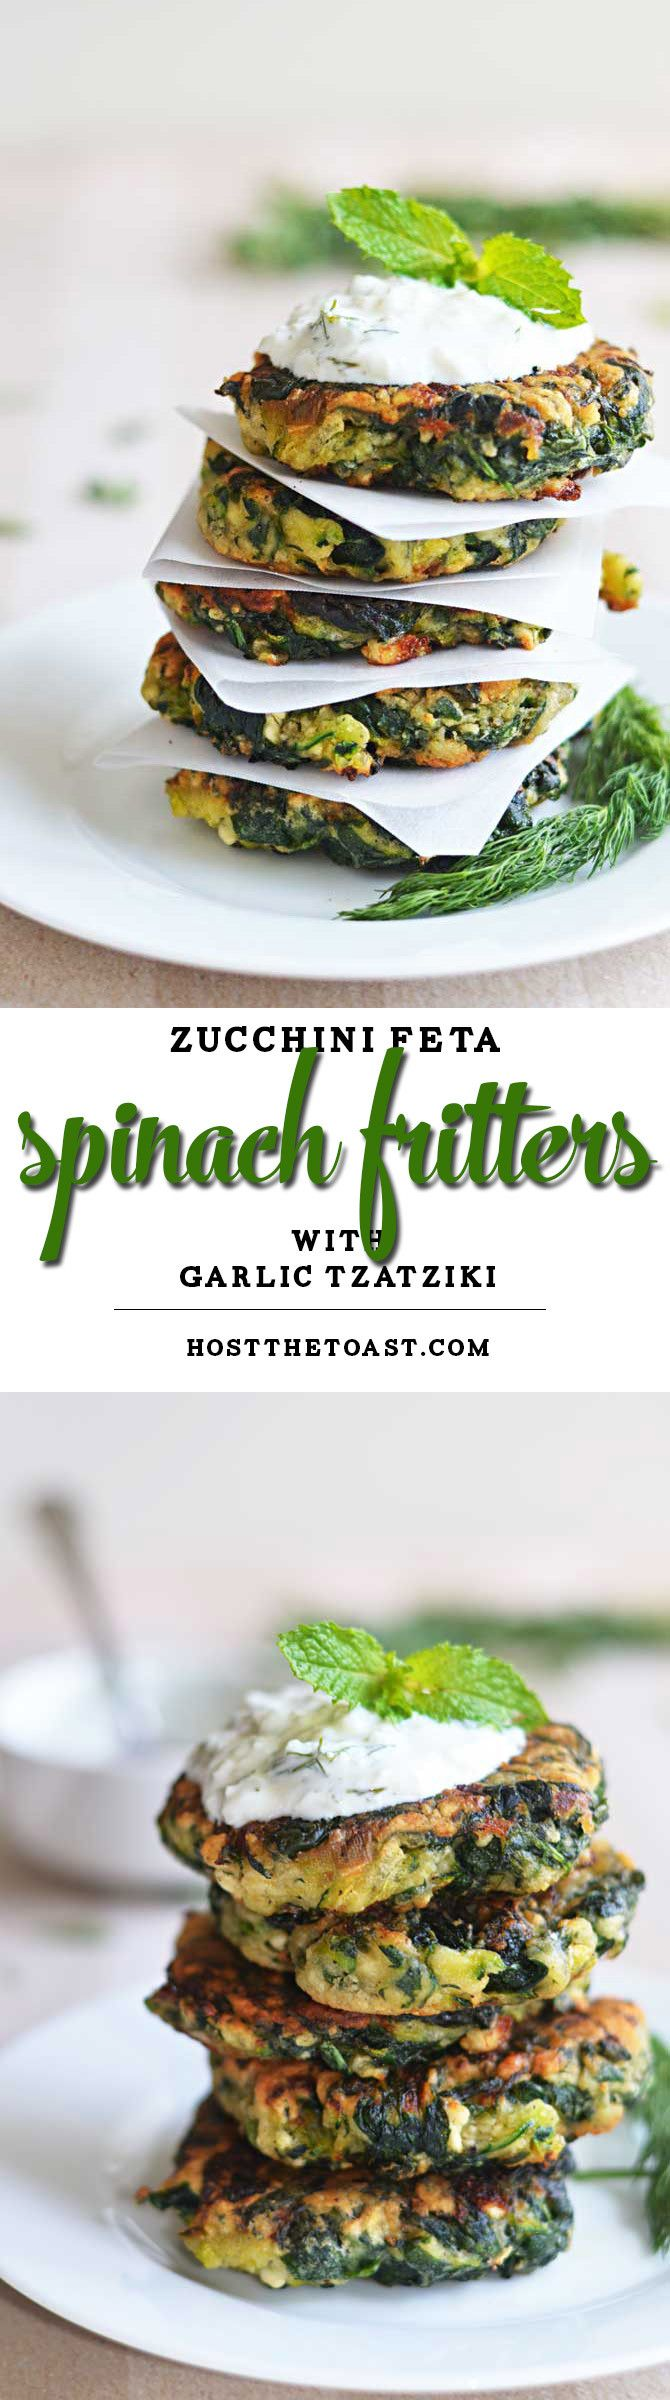 Garlic Tzatziki, Hostthetoast Com, Made, Healthy, Cooking, Appetizers ...